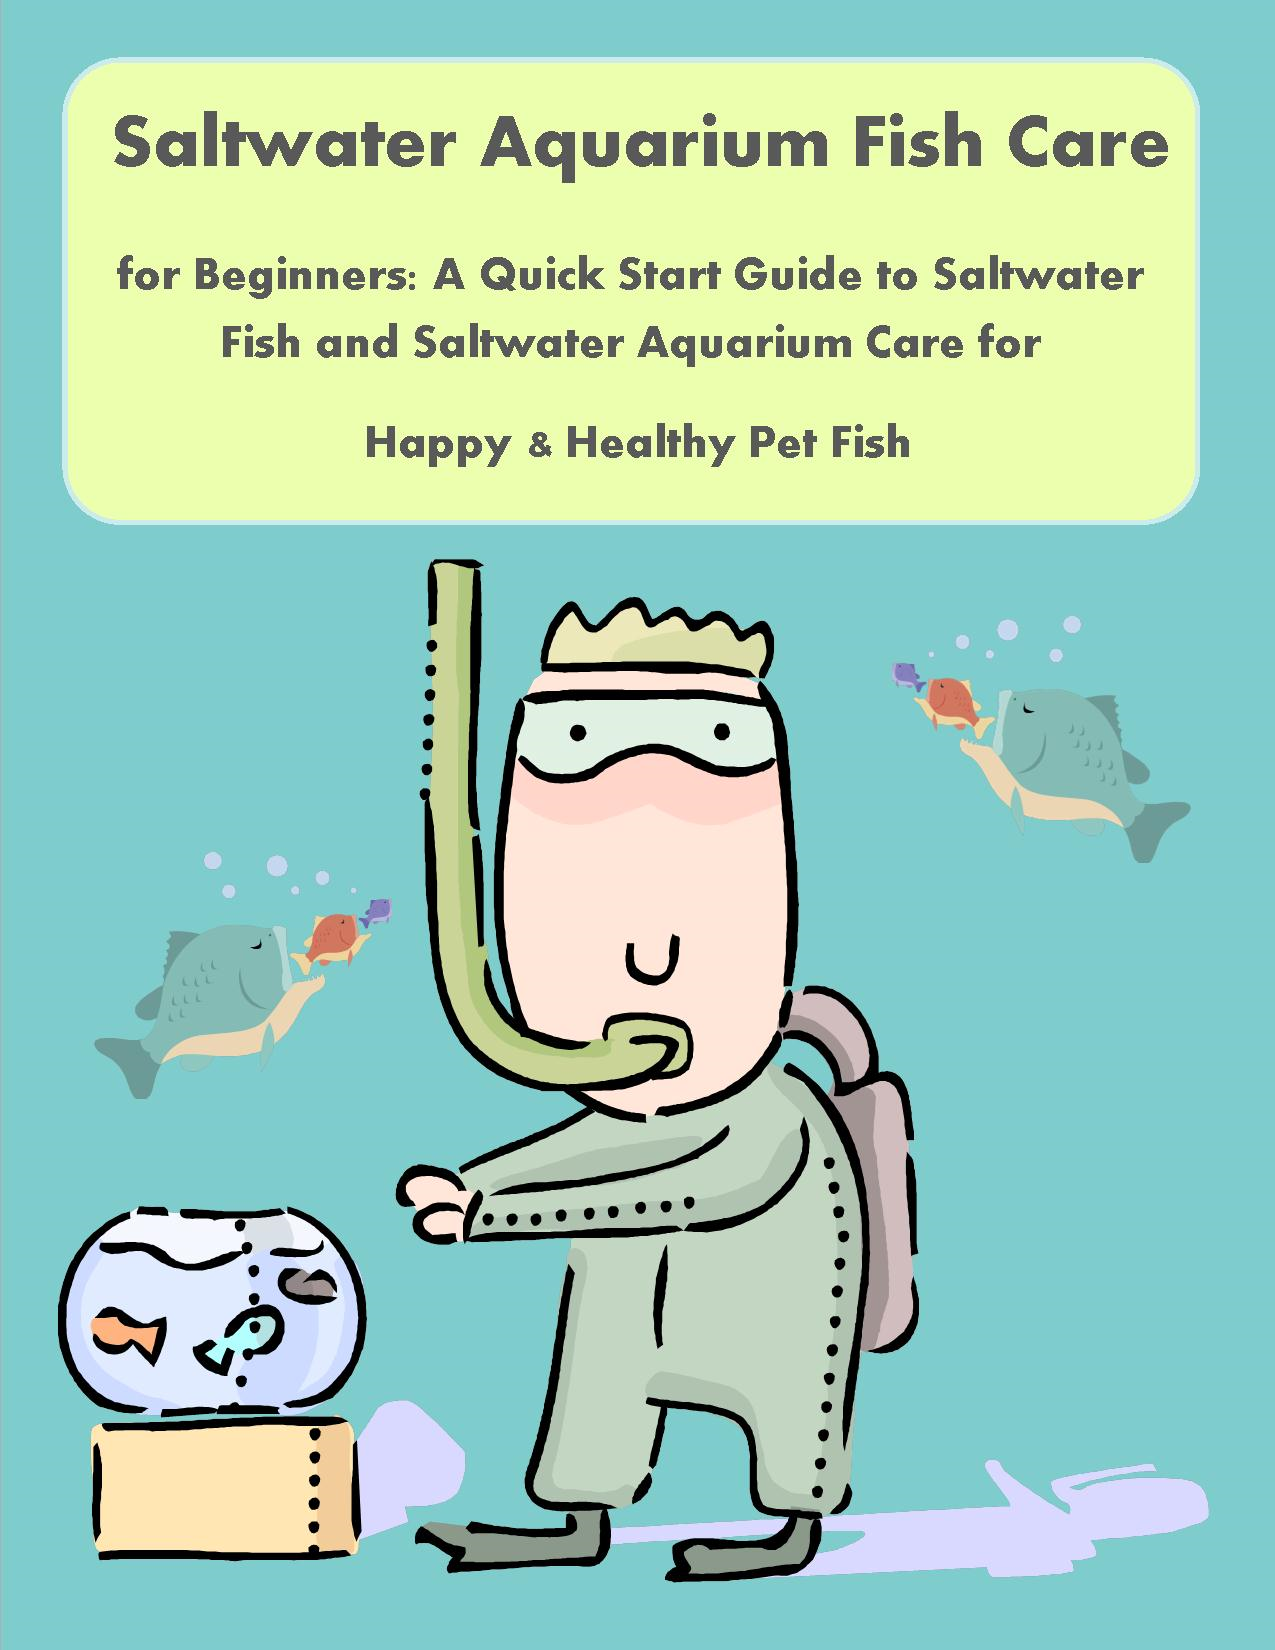 Fish aquarium guide - Saltwater Aquarium Fish Care For Beginners A Quick Start Guide To Saltwater Fish And Saltwater Aquarium Care For Happy Healthy Pet Fish